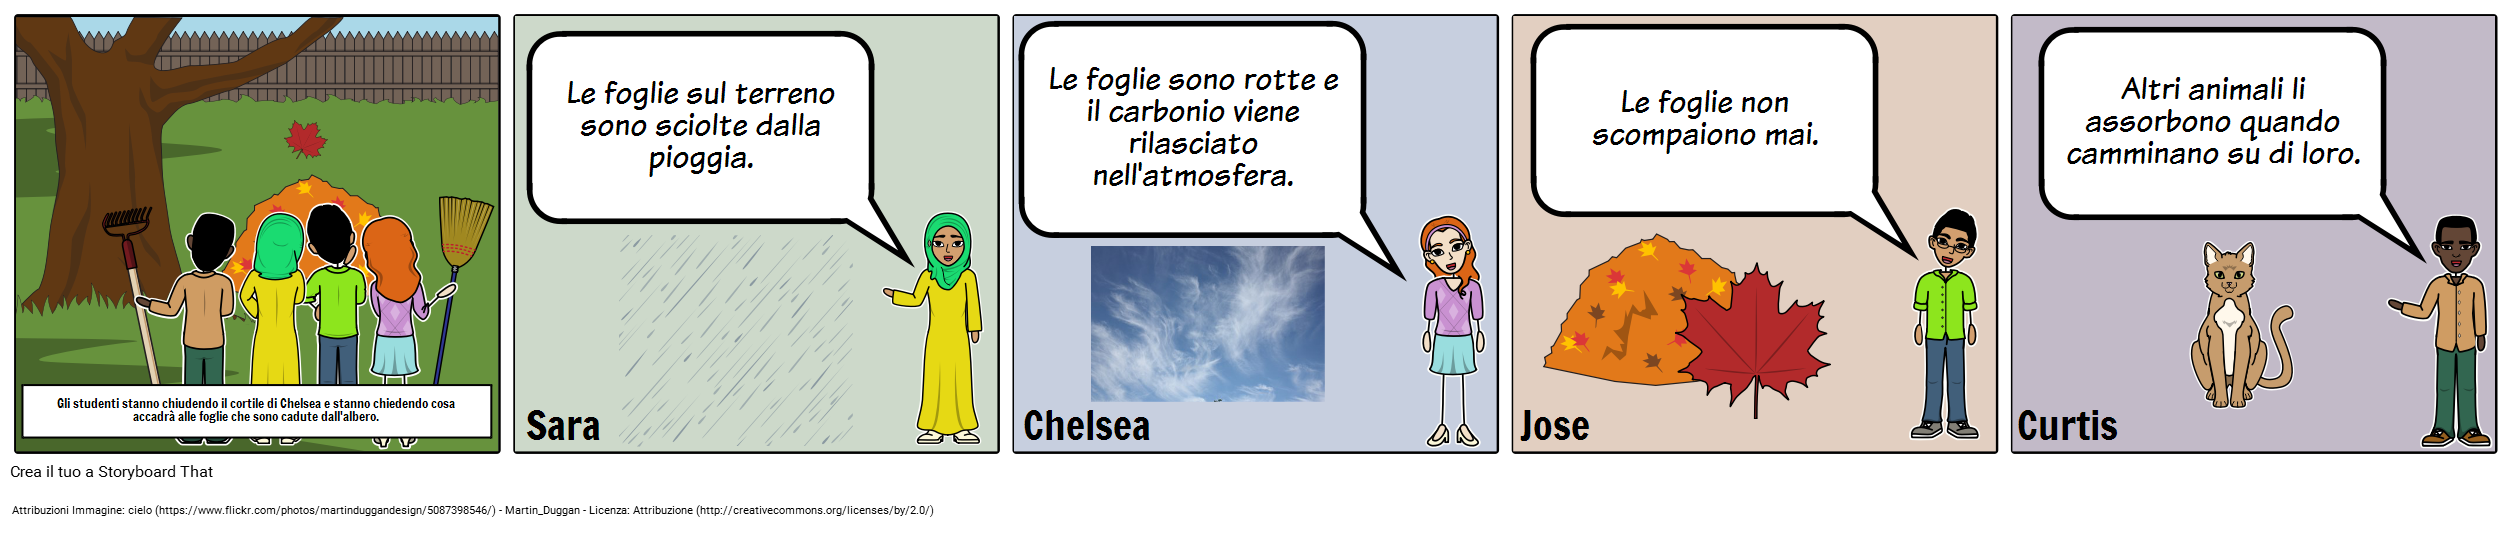 Storyboard di Discussione - MS - Il Ciclo del Carbonio